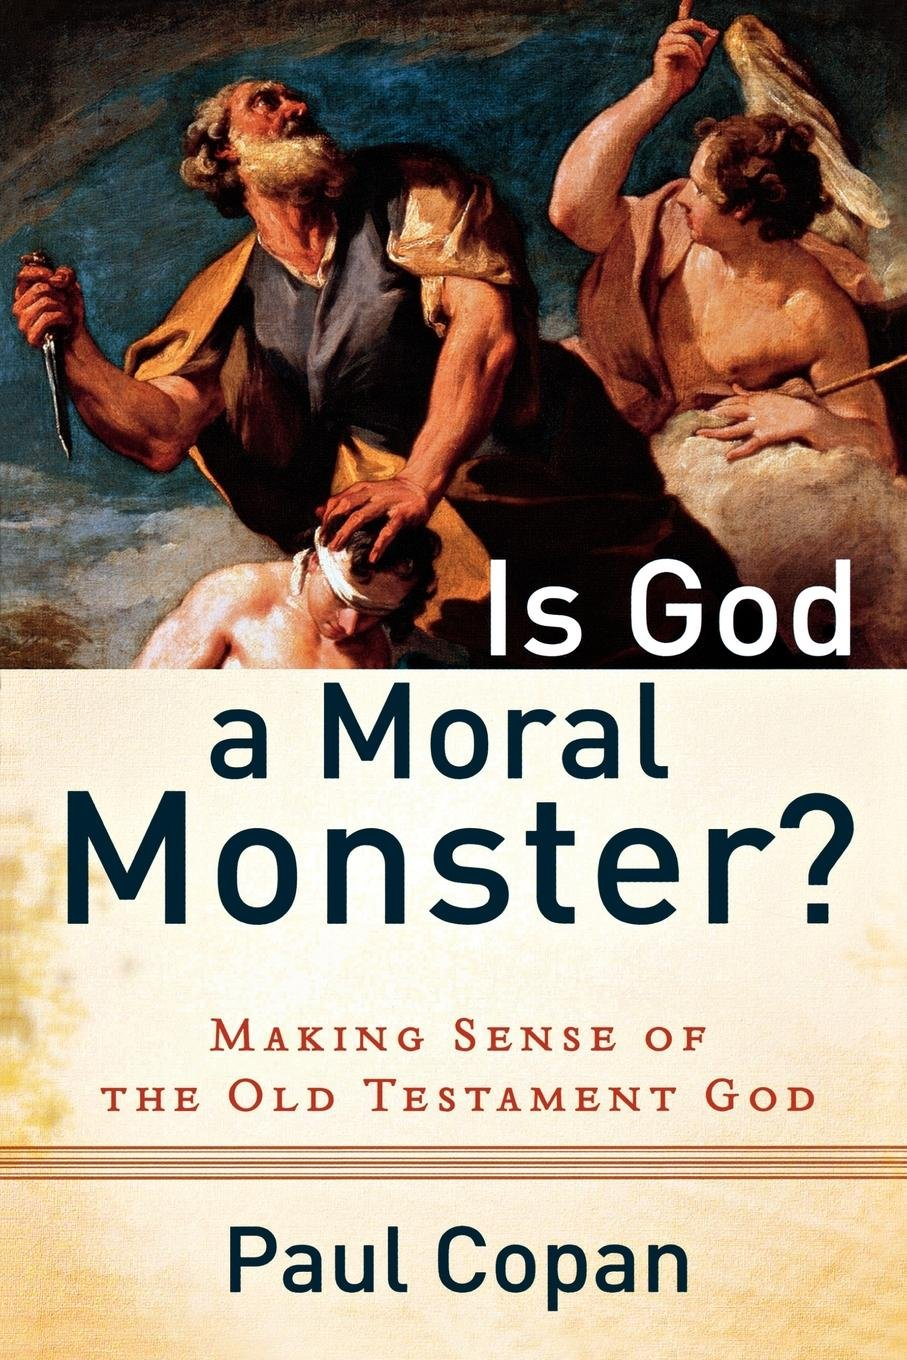 Is God a Moral Monster? Making Sense of the Old Testament God - Paul Copan [PDF]